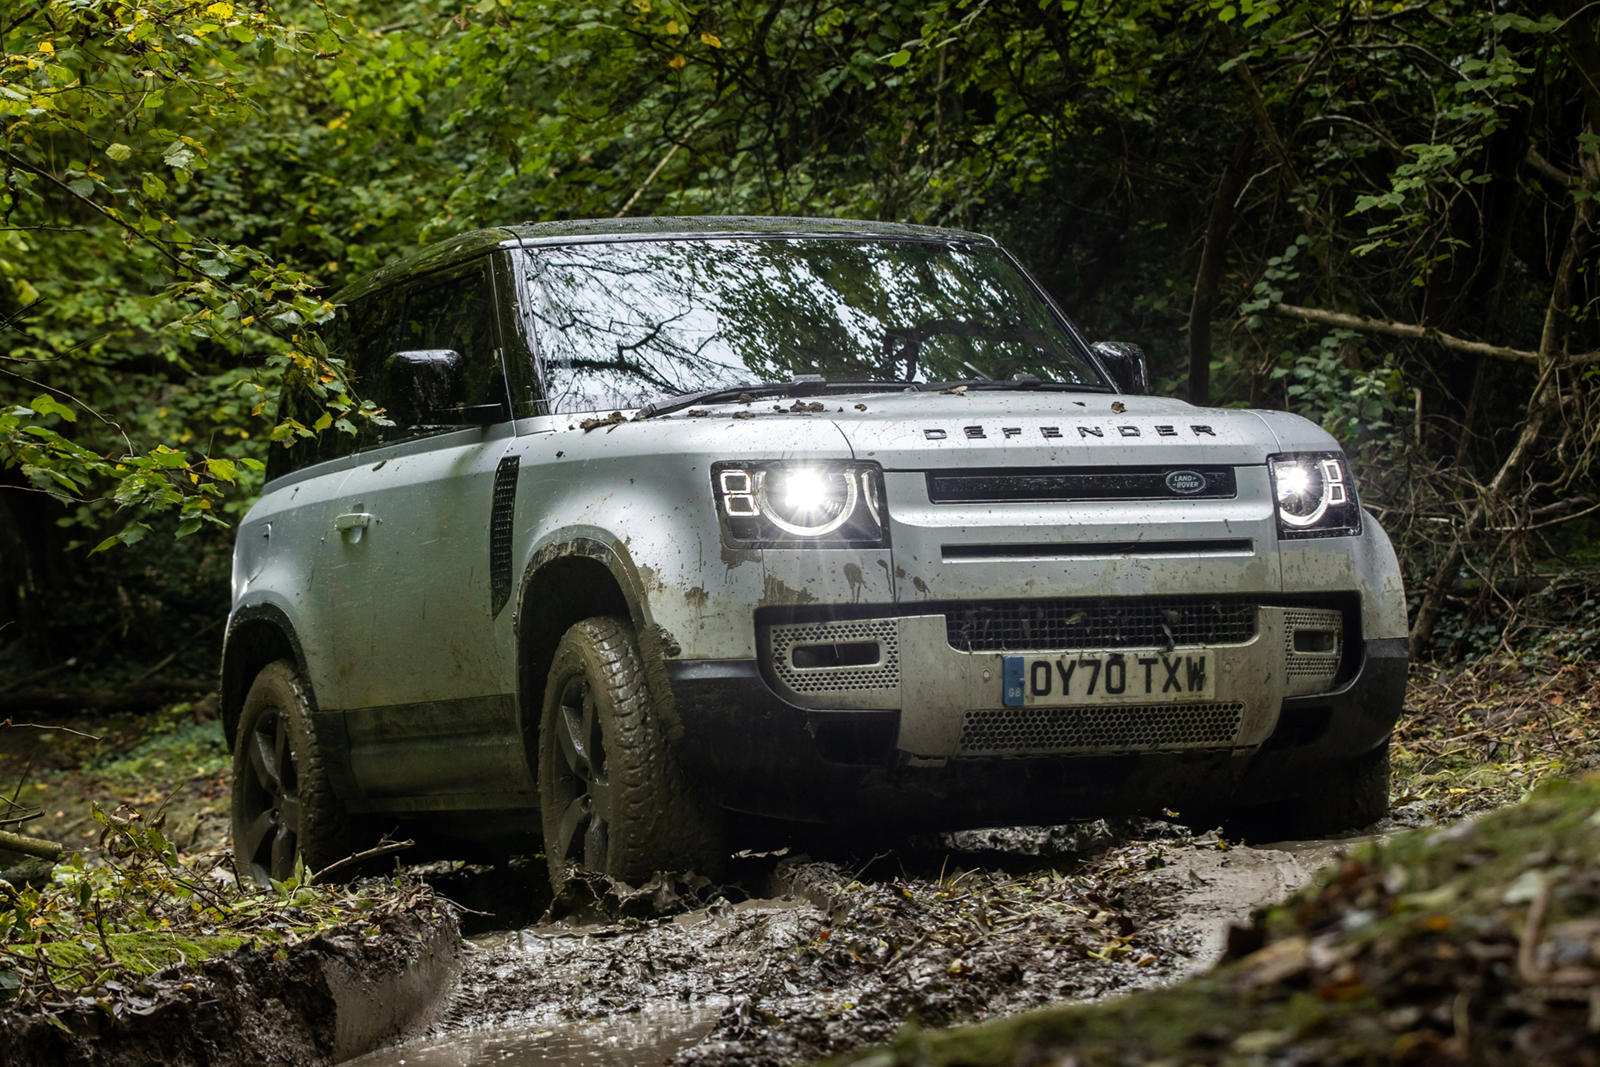 America's New Land Rover Defender Is Already Outselling The Old Model